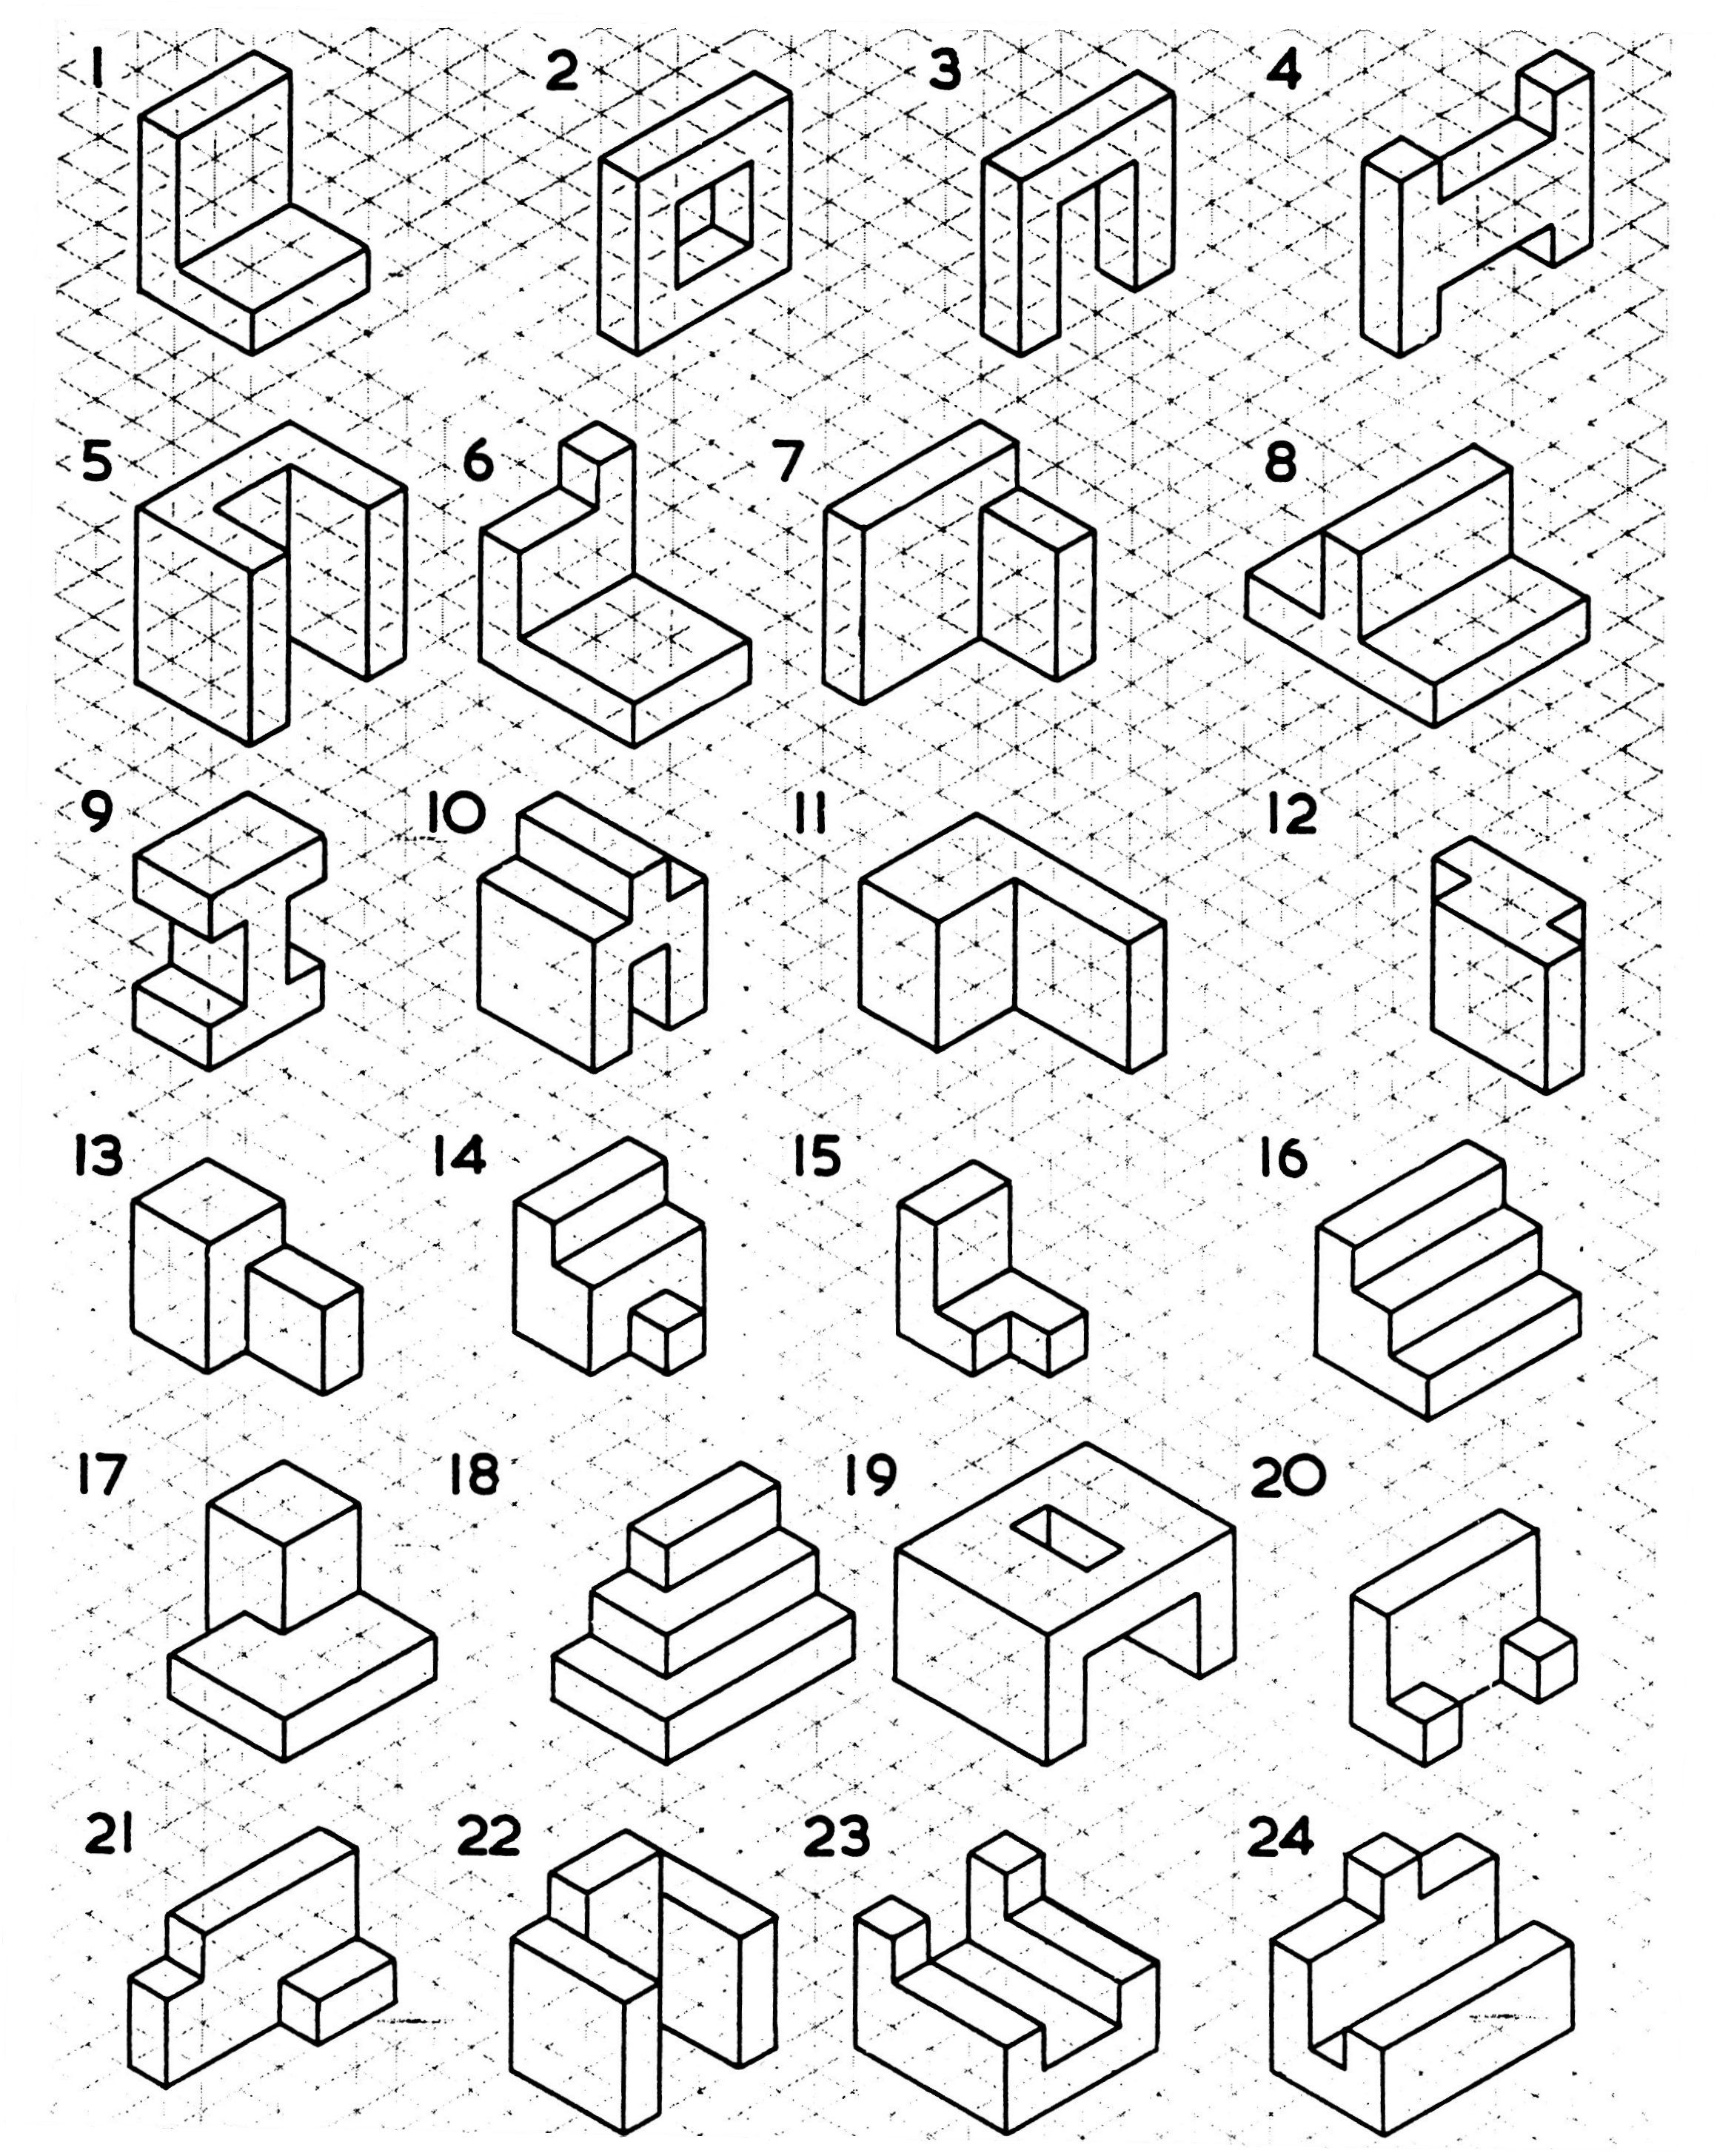 medium resolution of isometric_worksheet1.jpg (2319×2912)   Isometric drawing